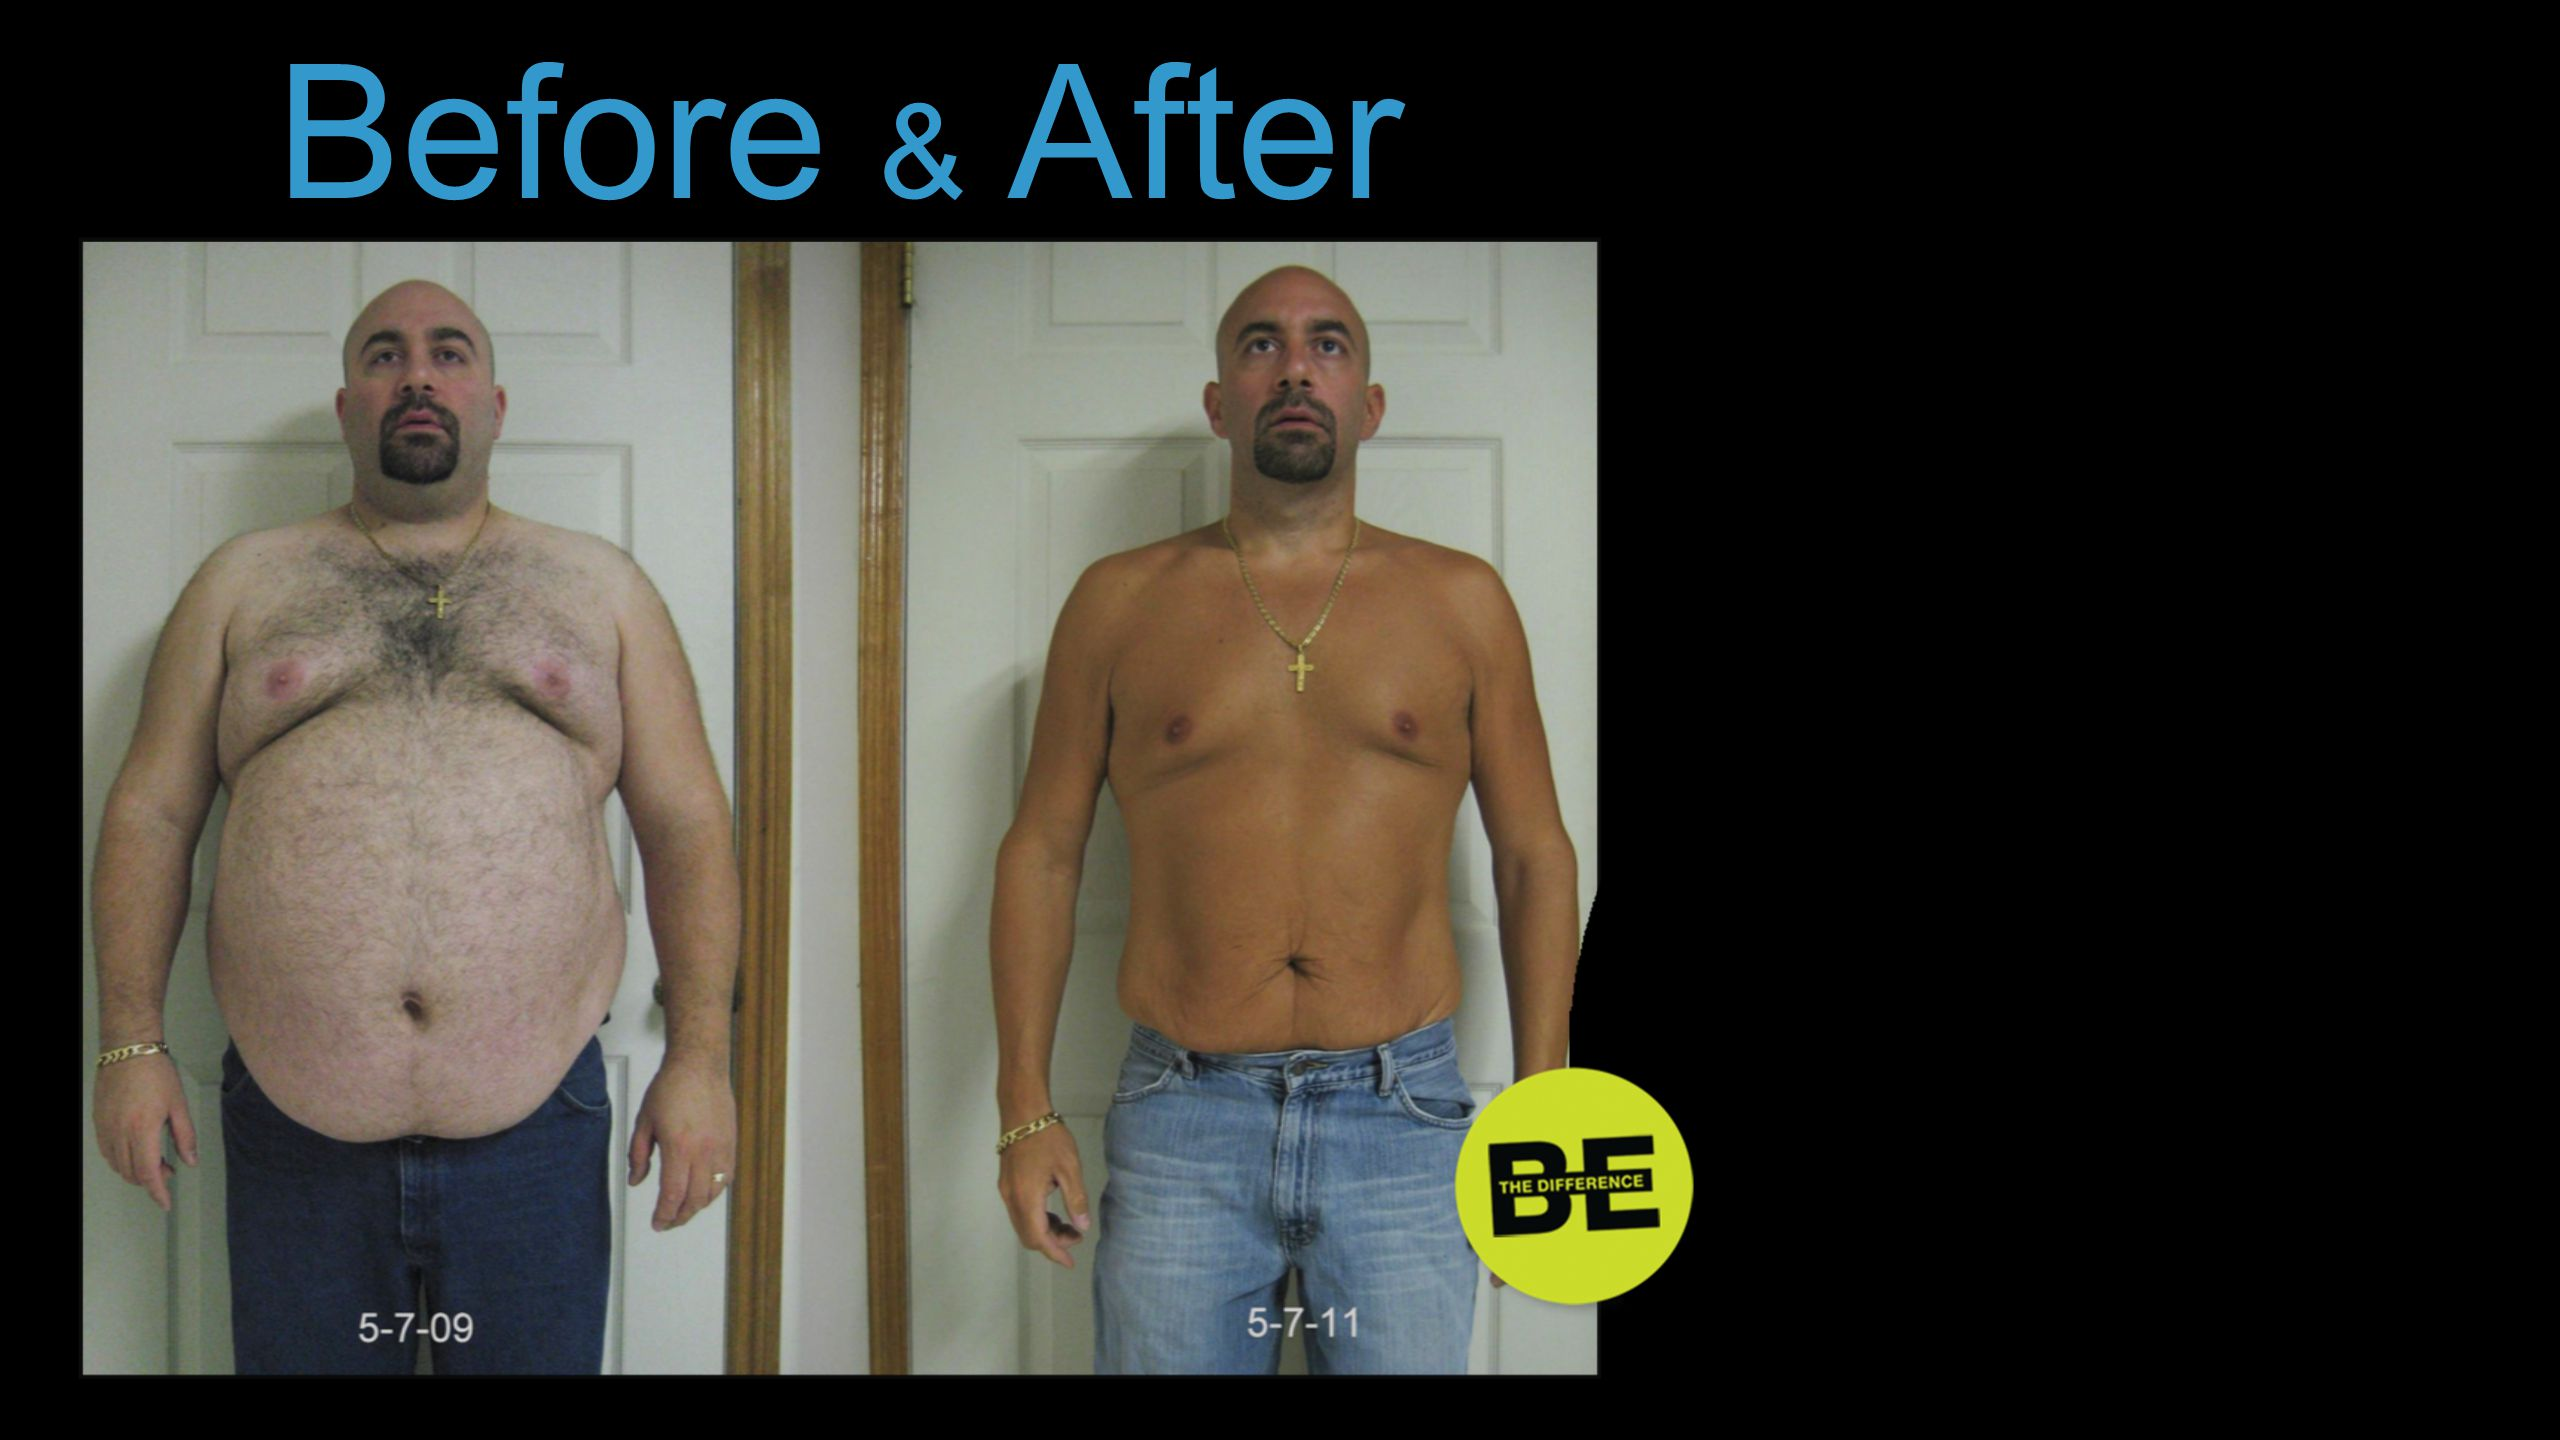 Before & After … or lost weight.